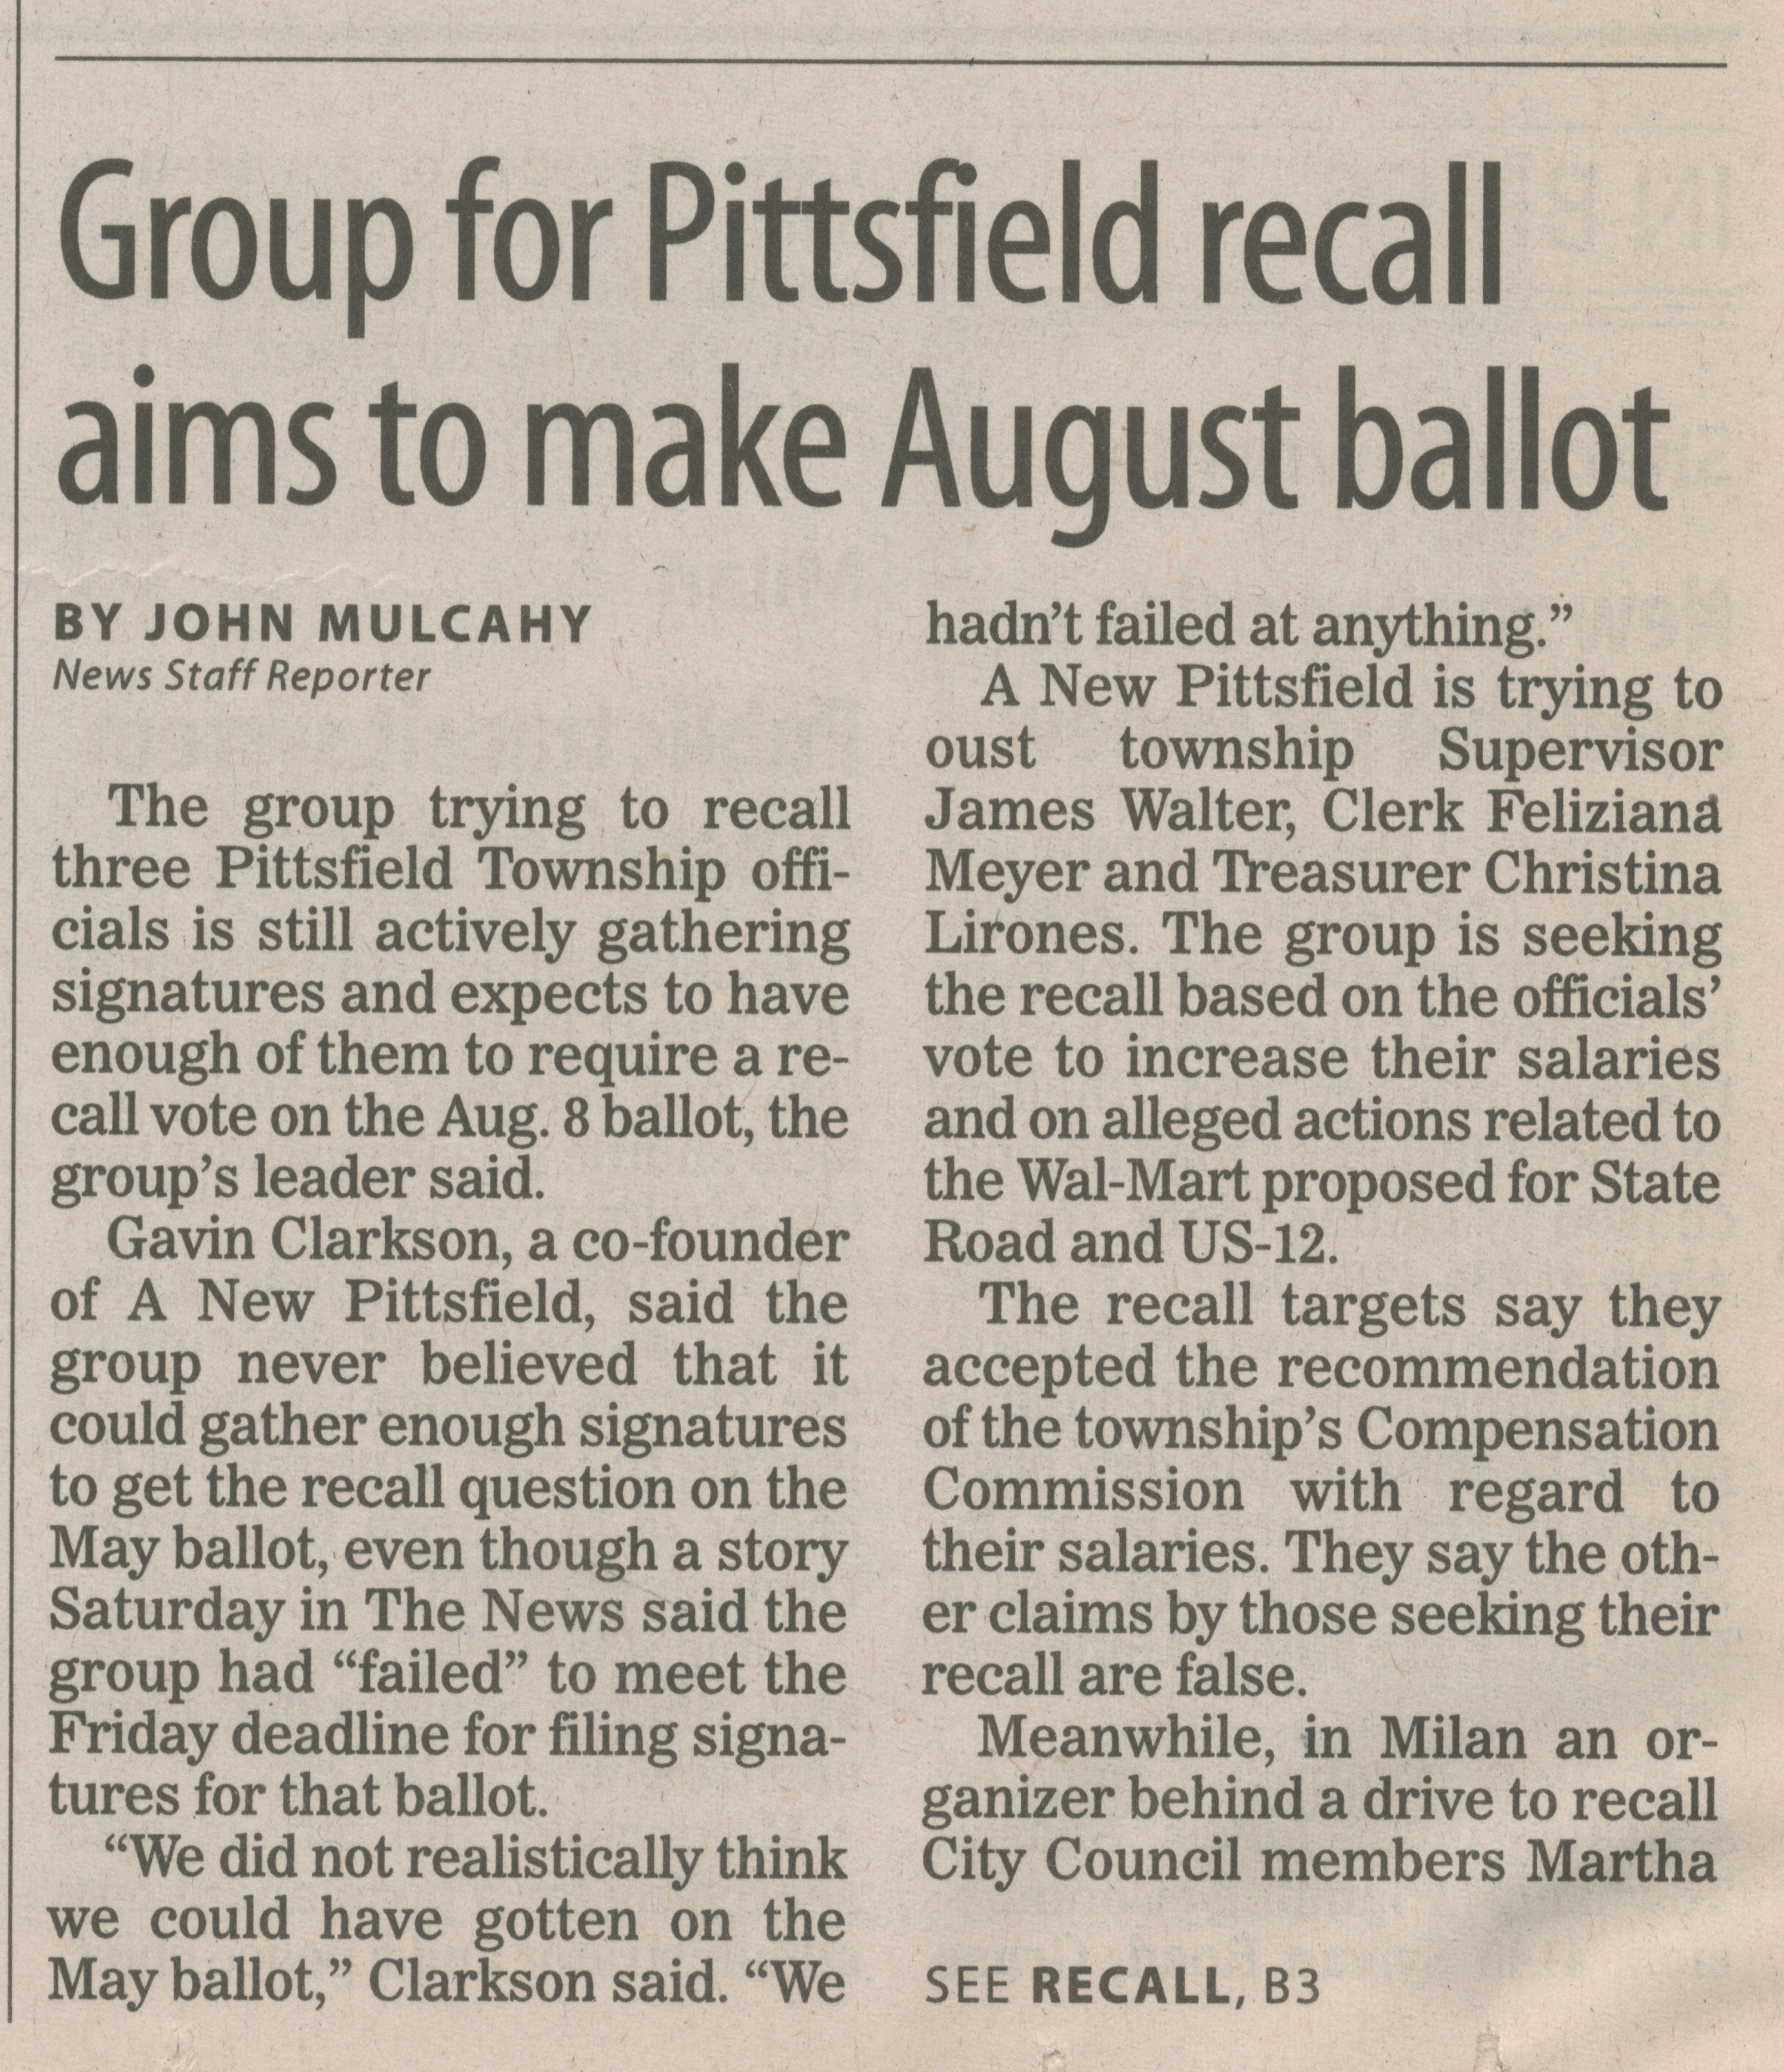 Group for Pittsfield recall aims to make August ballot image